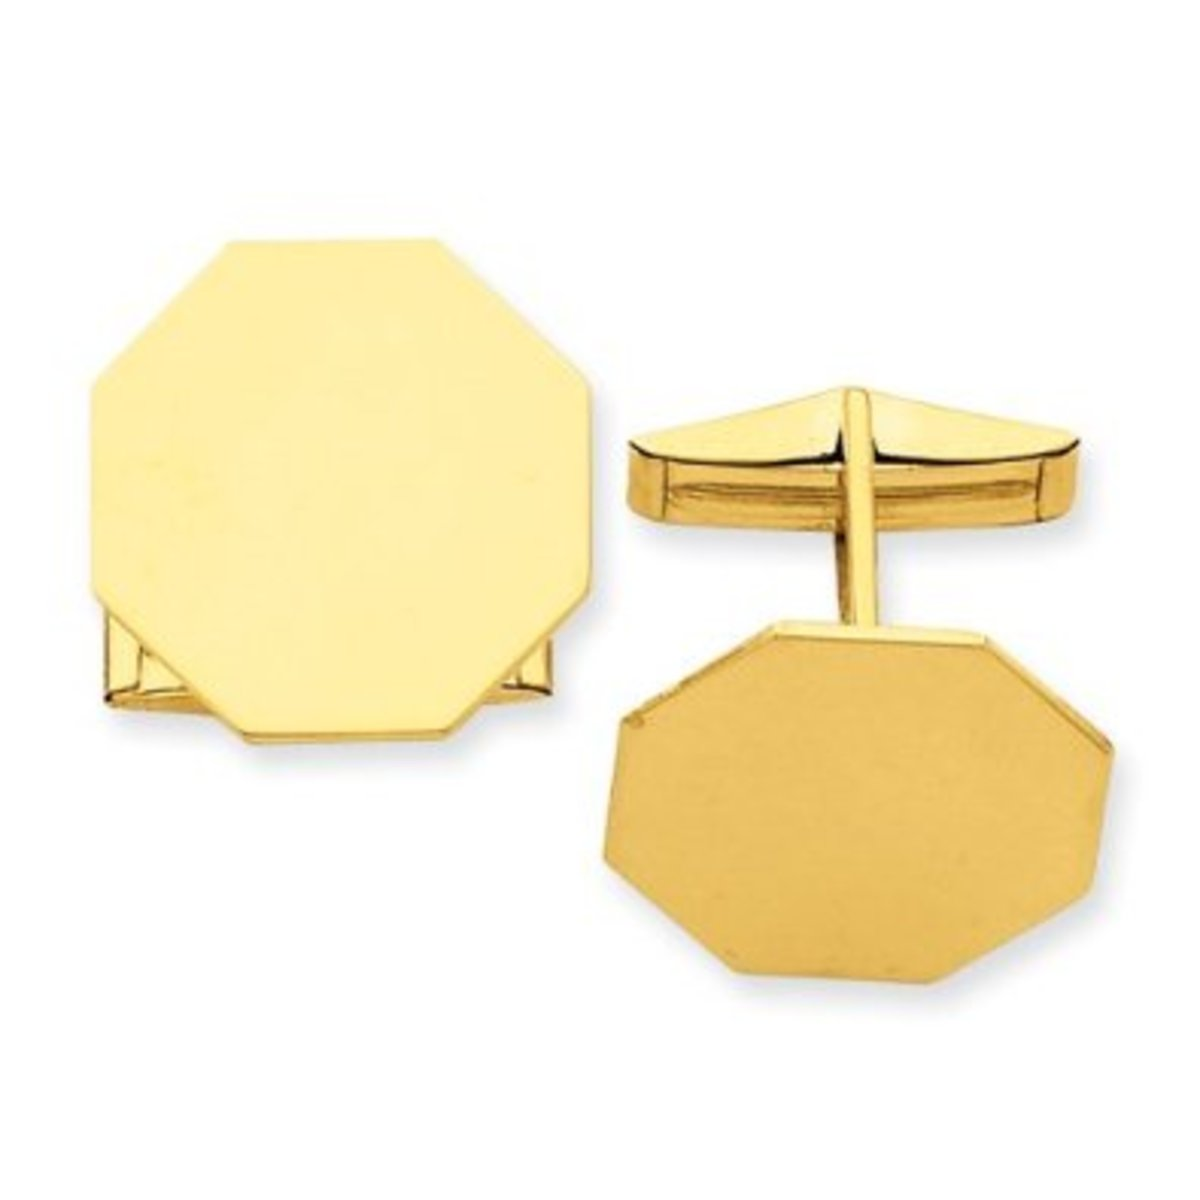 14K Gold Cuff Links Gift